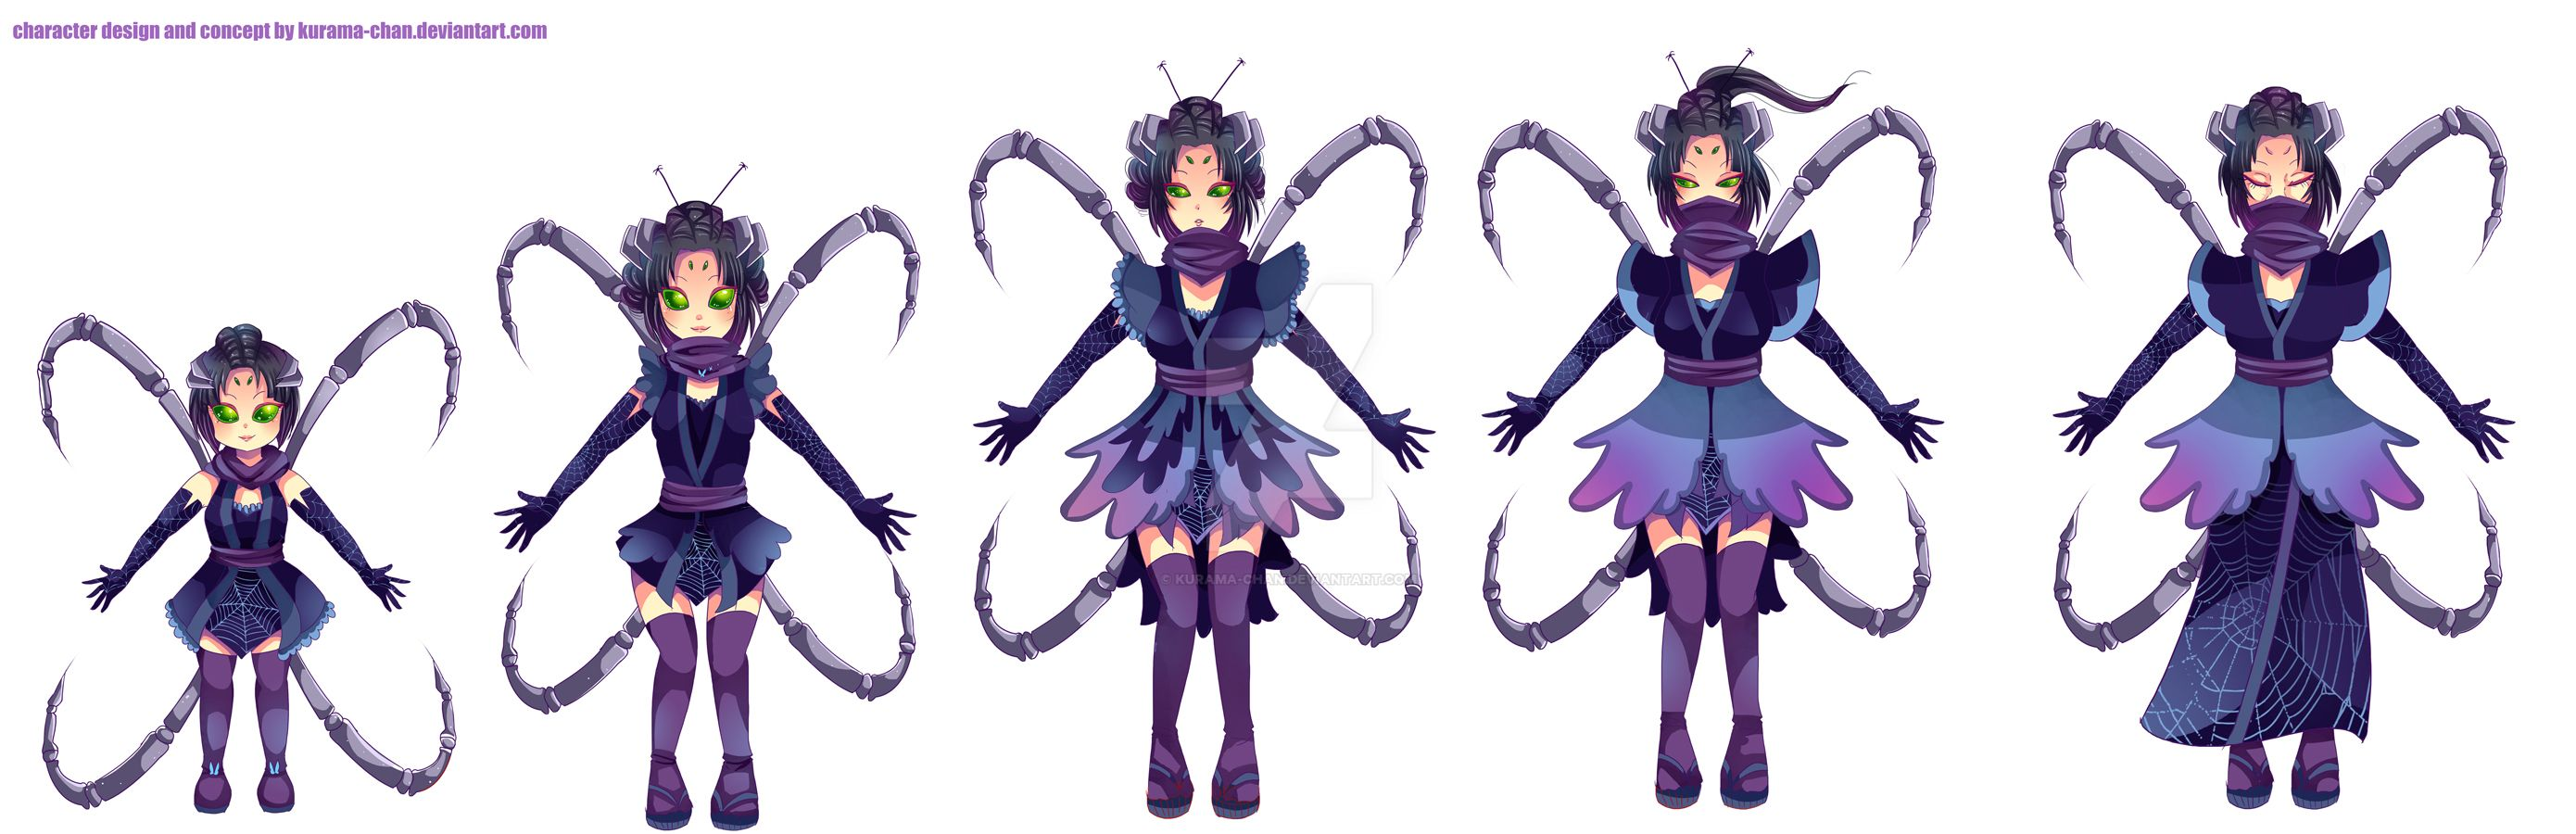 Anime Character Design Tropes : Jorogumo anime pixshark images galleries with